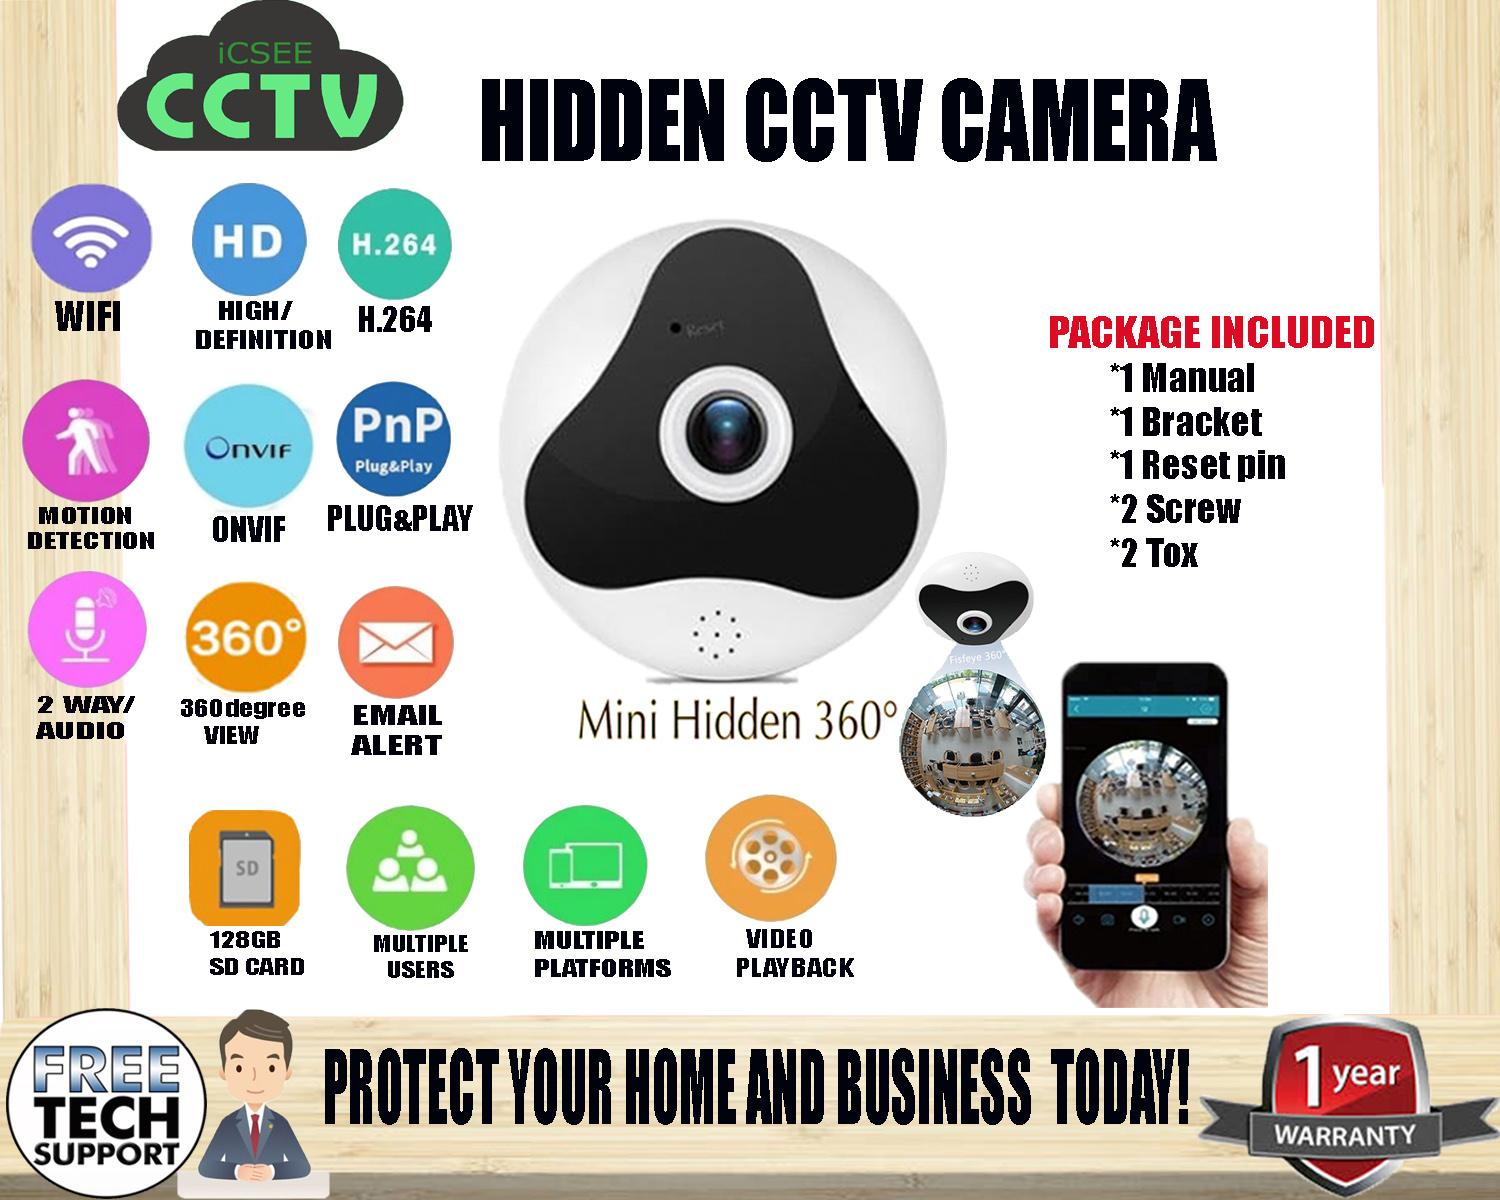 1year Warranty ICSee CCTV Smart Home Security Mini 360 degree Panoramic IP VR SmartPhone Camera Wireless Wifi hidden Spy Ceiling FishEye Camera and Two way Audio To Talk